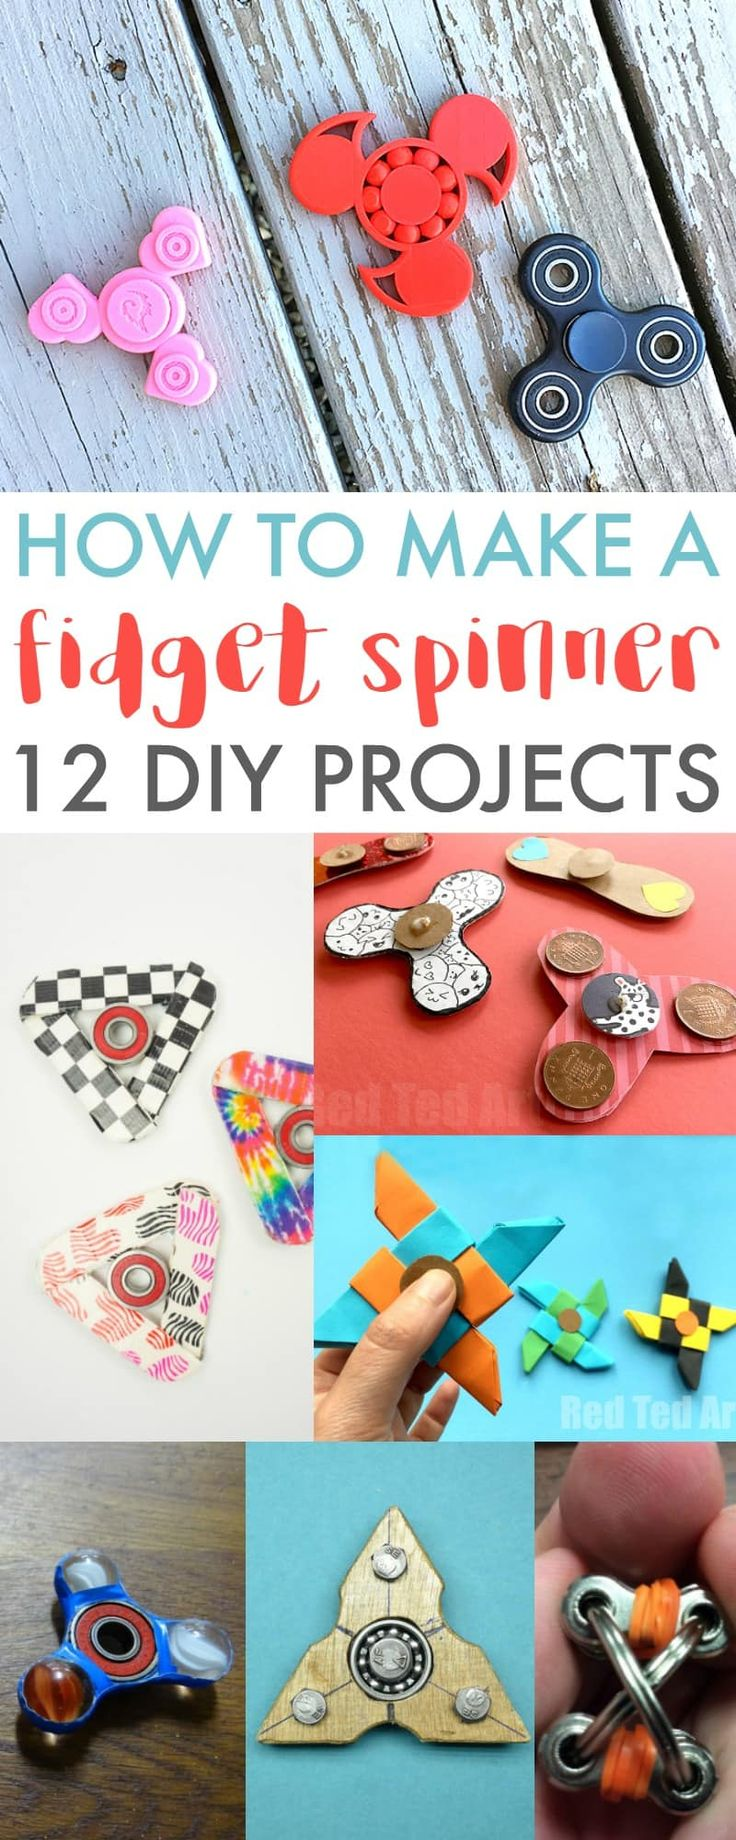 Have you ever wondered how to make a fidget spinner at home? Fidget spinners are all the rage, but they can be expensive, if you can even find them. It is pretty easy to make your … https://www.730sagestreet.com/how-to-make-a-fidget-spinner-12-diy-projects/